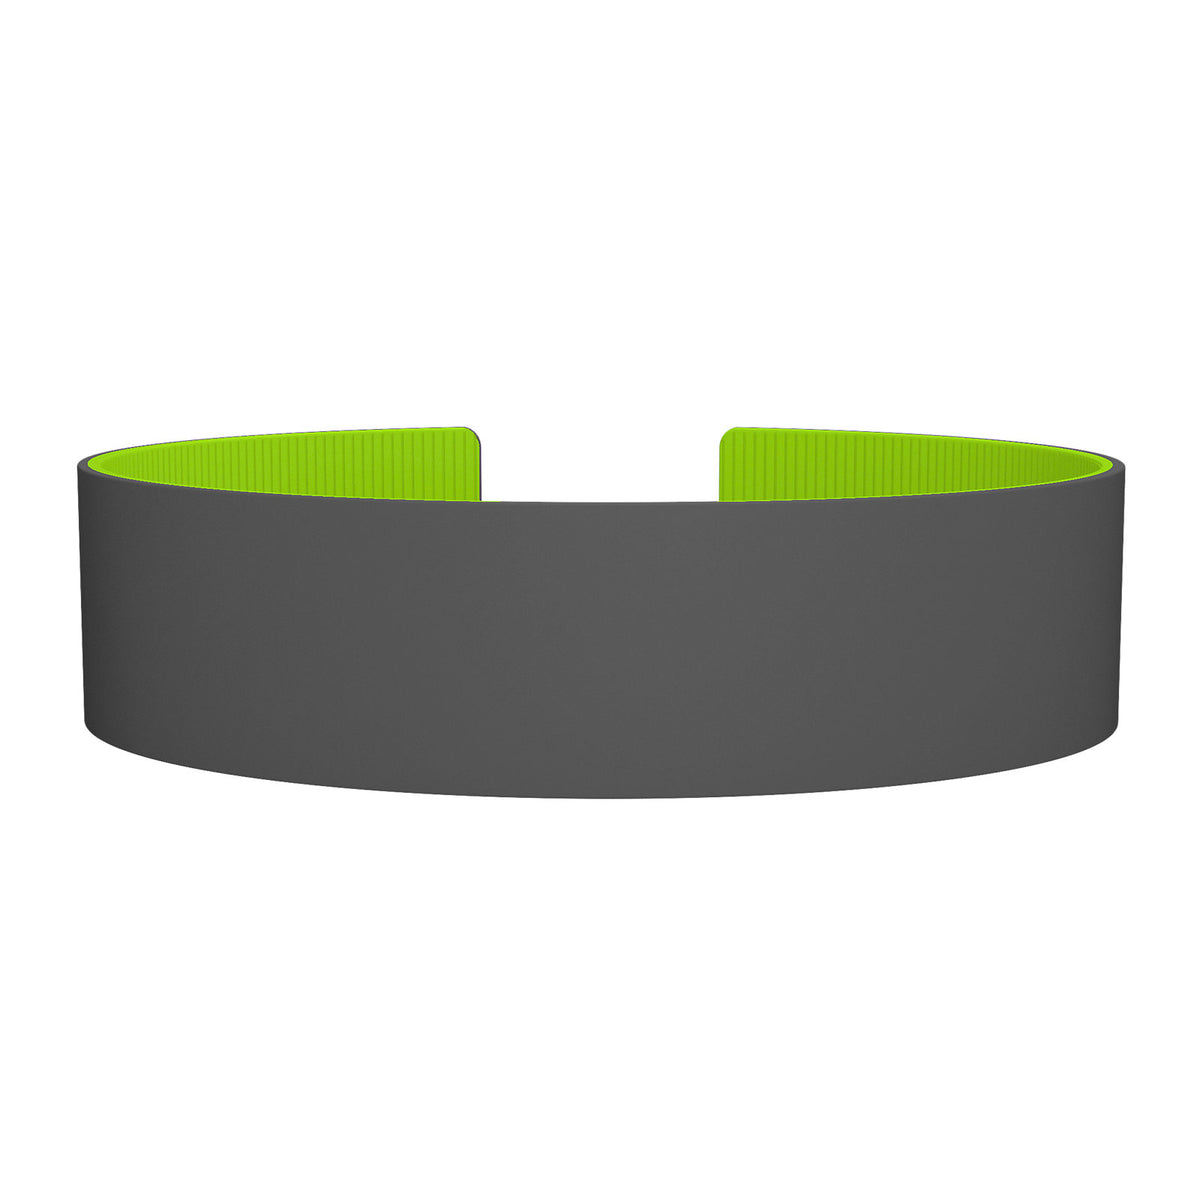 ROAD iD Replacement Band 19mm Gray/Grasshopper Silicone Clasp